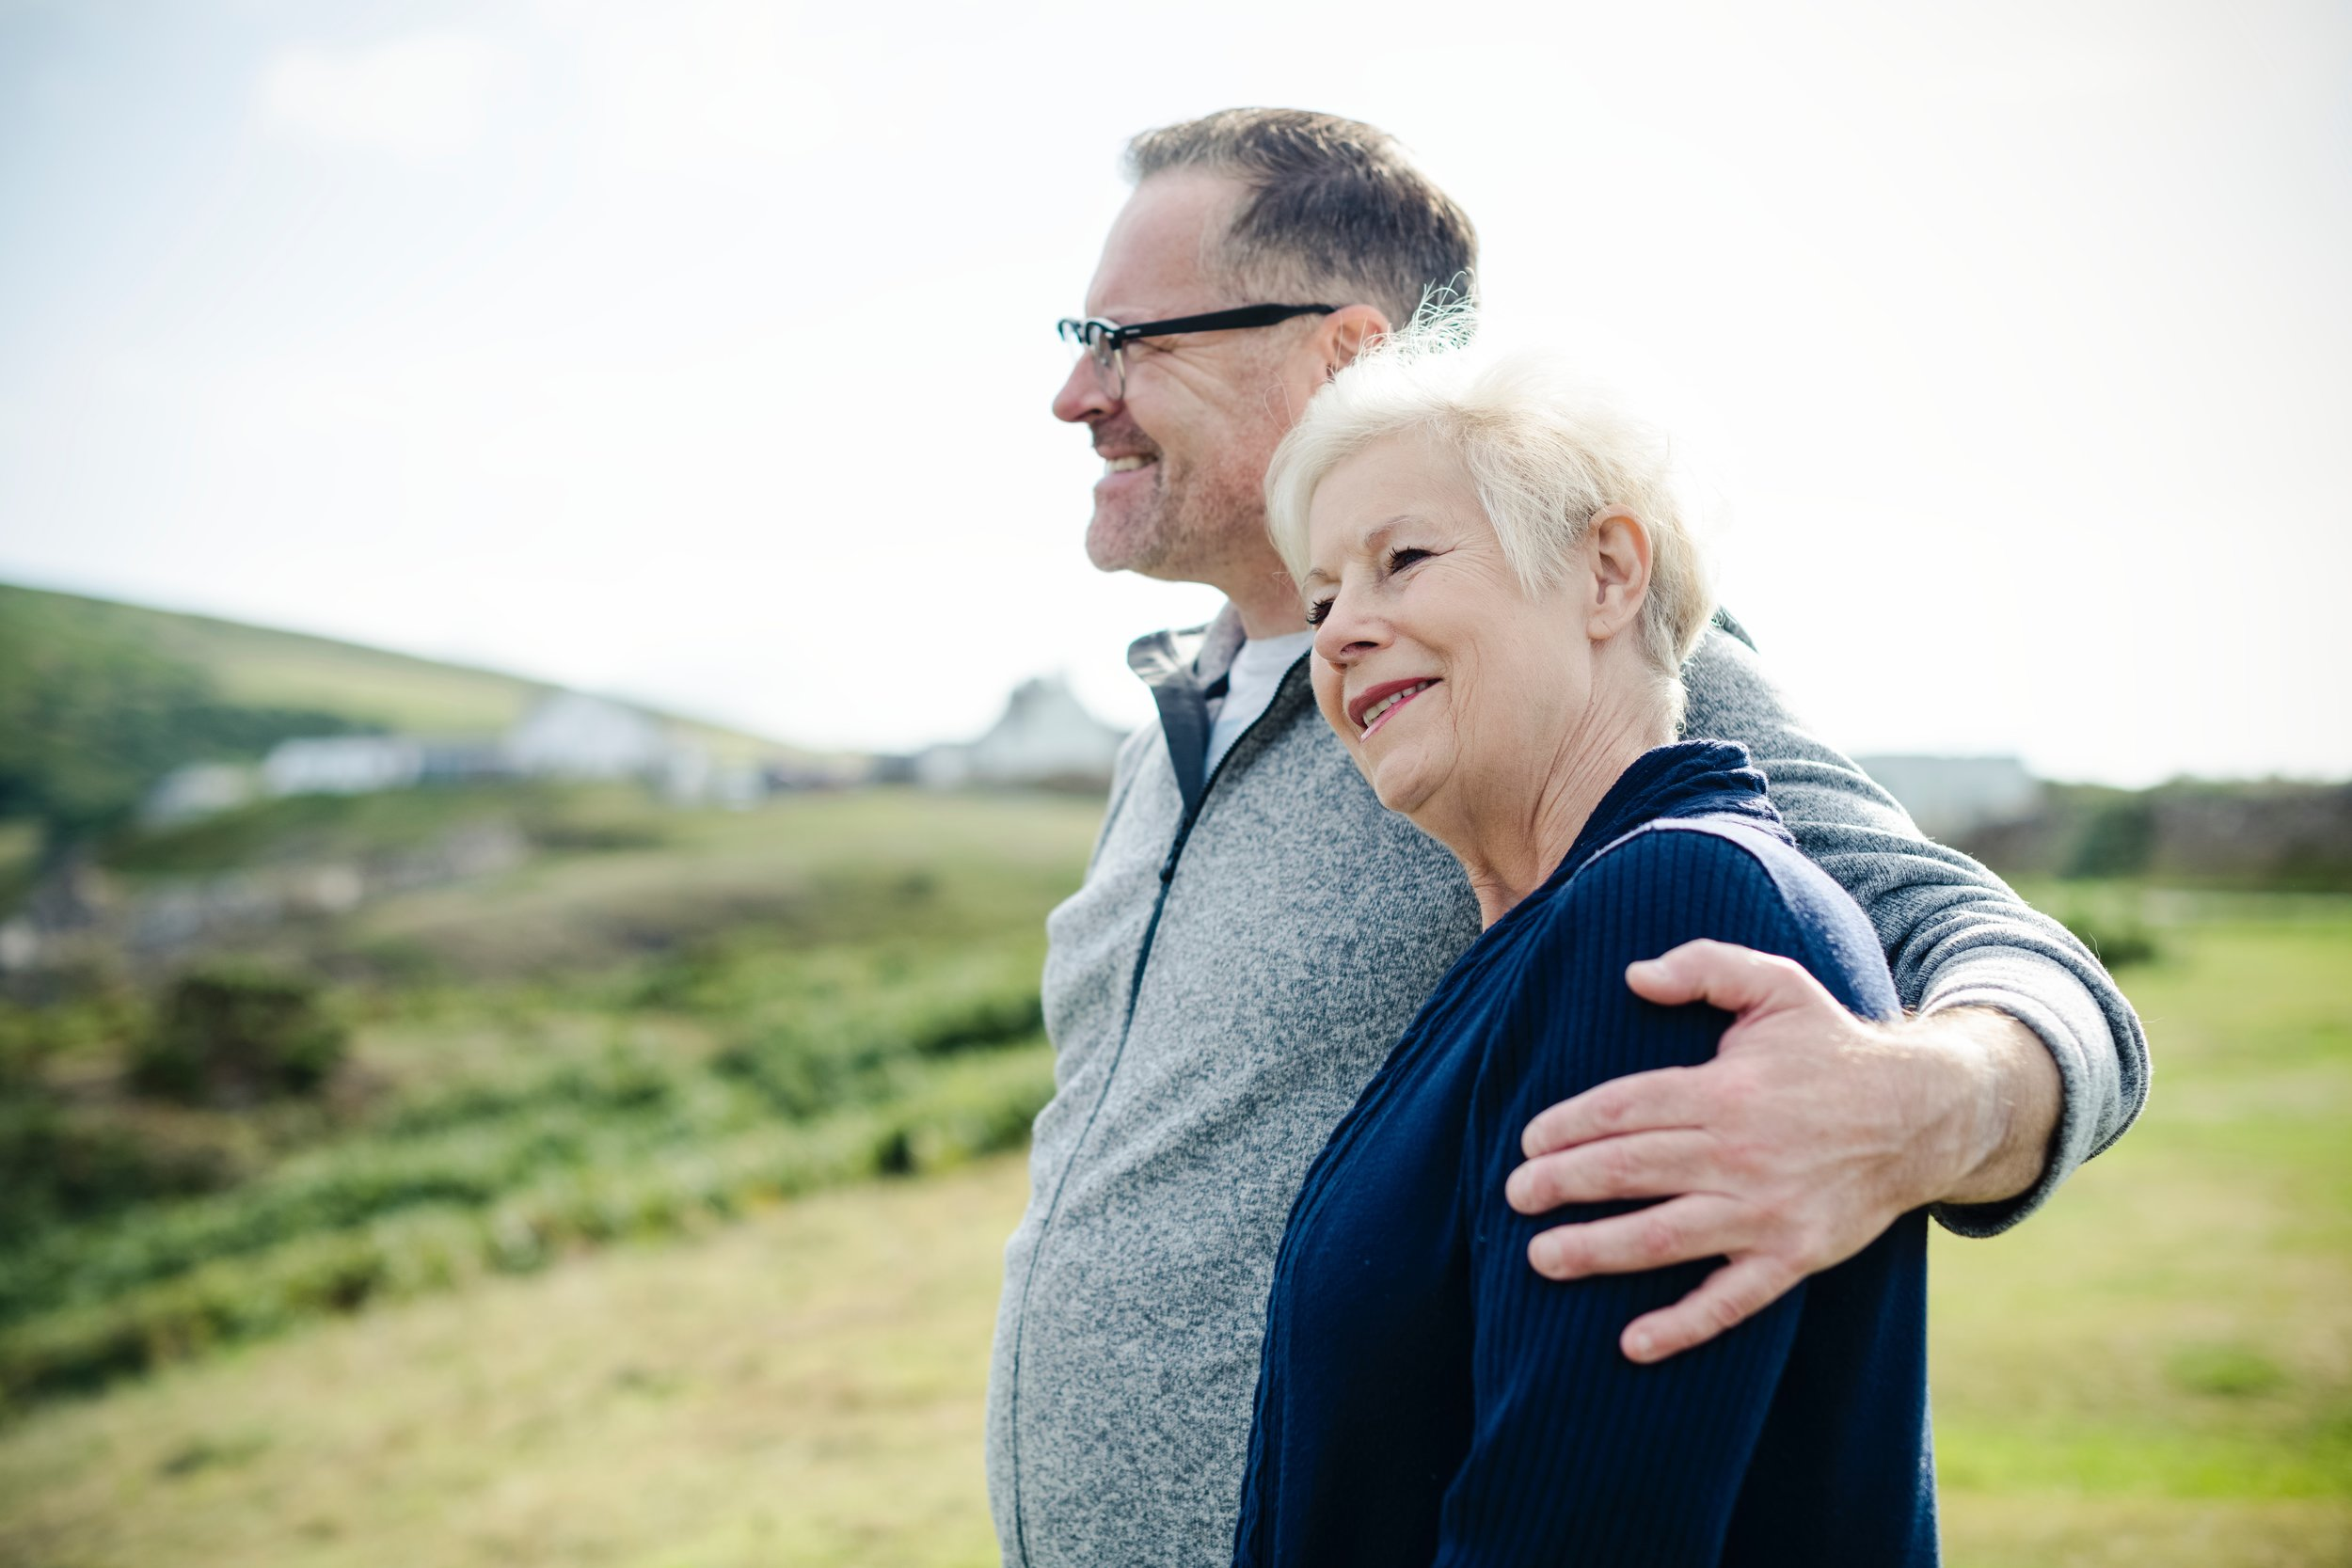 Live with Confidence! - Help older adults live an independent life with confidence.